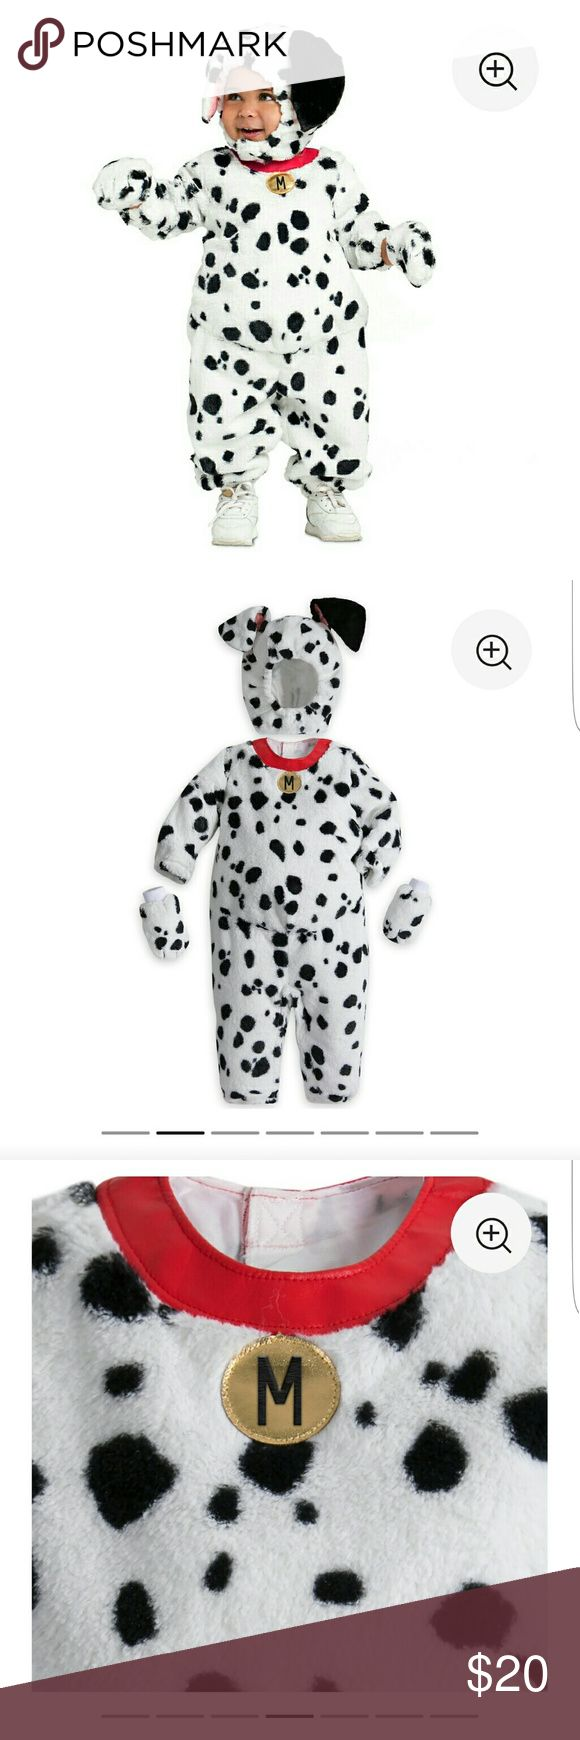 Disney store 101 Dalmatian costume Dalmatian costume includes bodysuit, headpiece and paw mittens/ Worn once for 30min Disney store Costumes